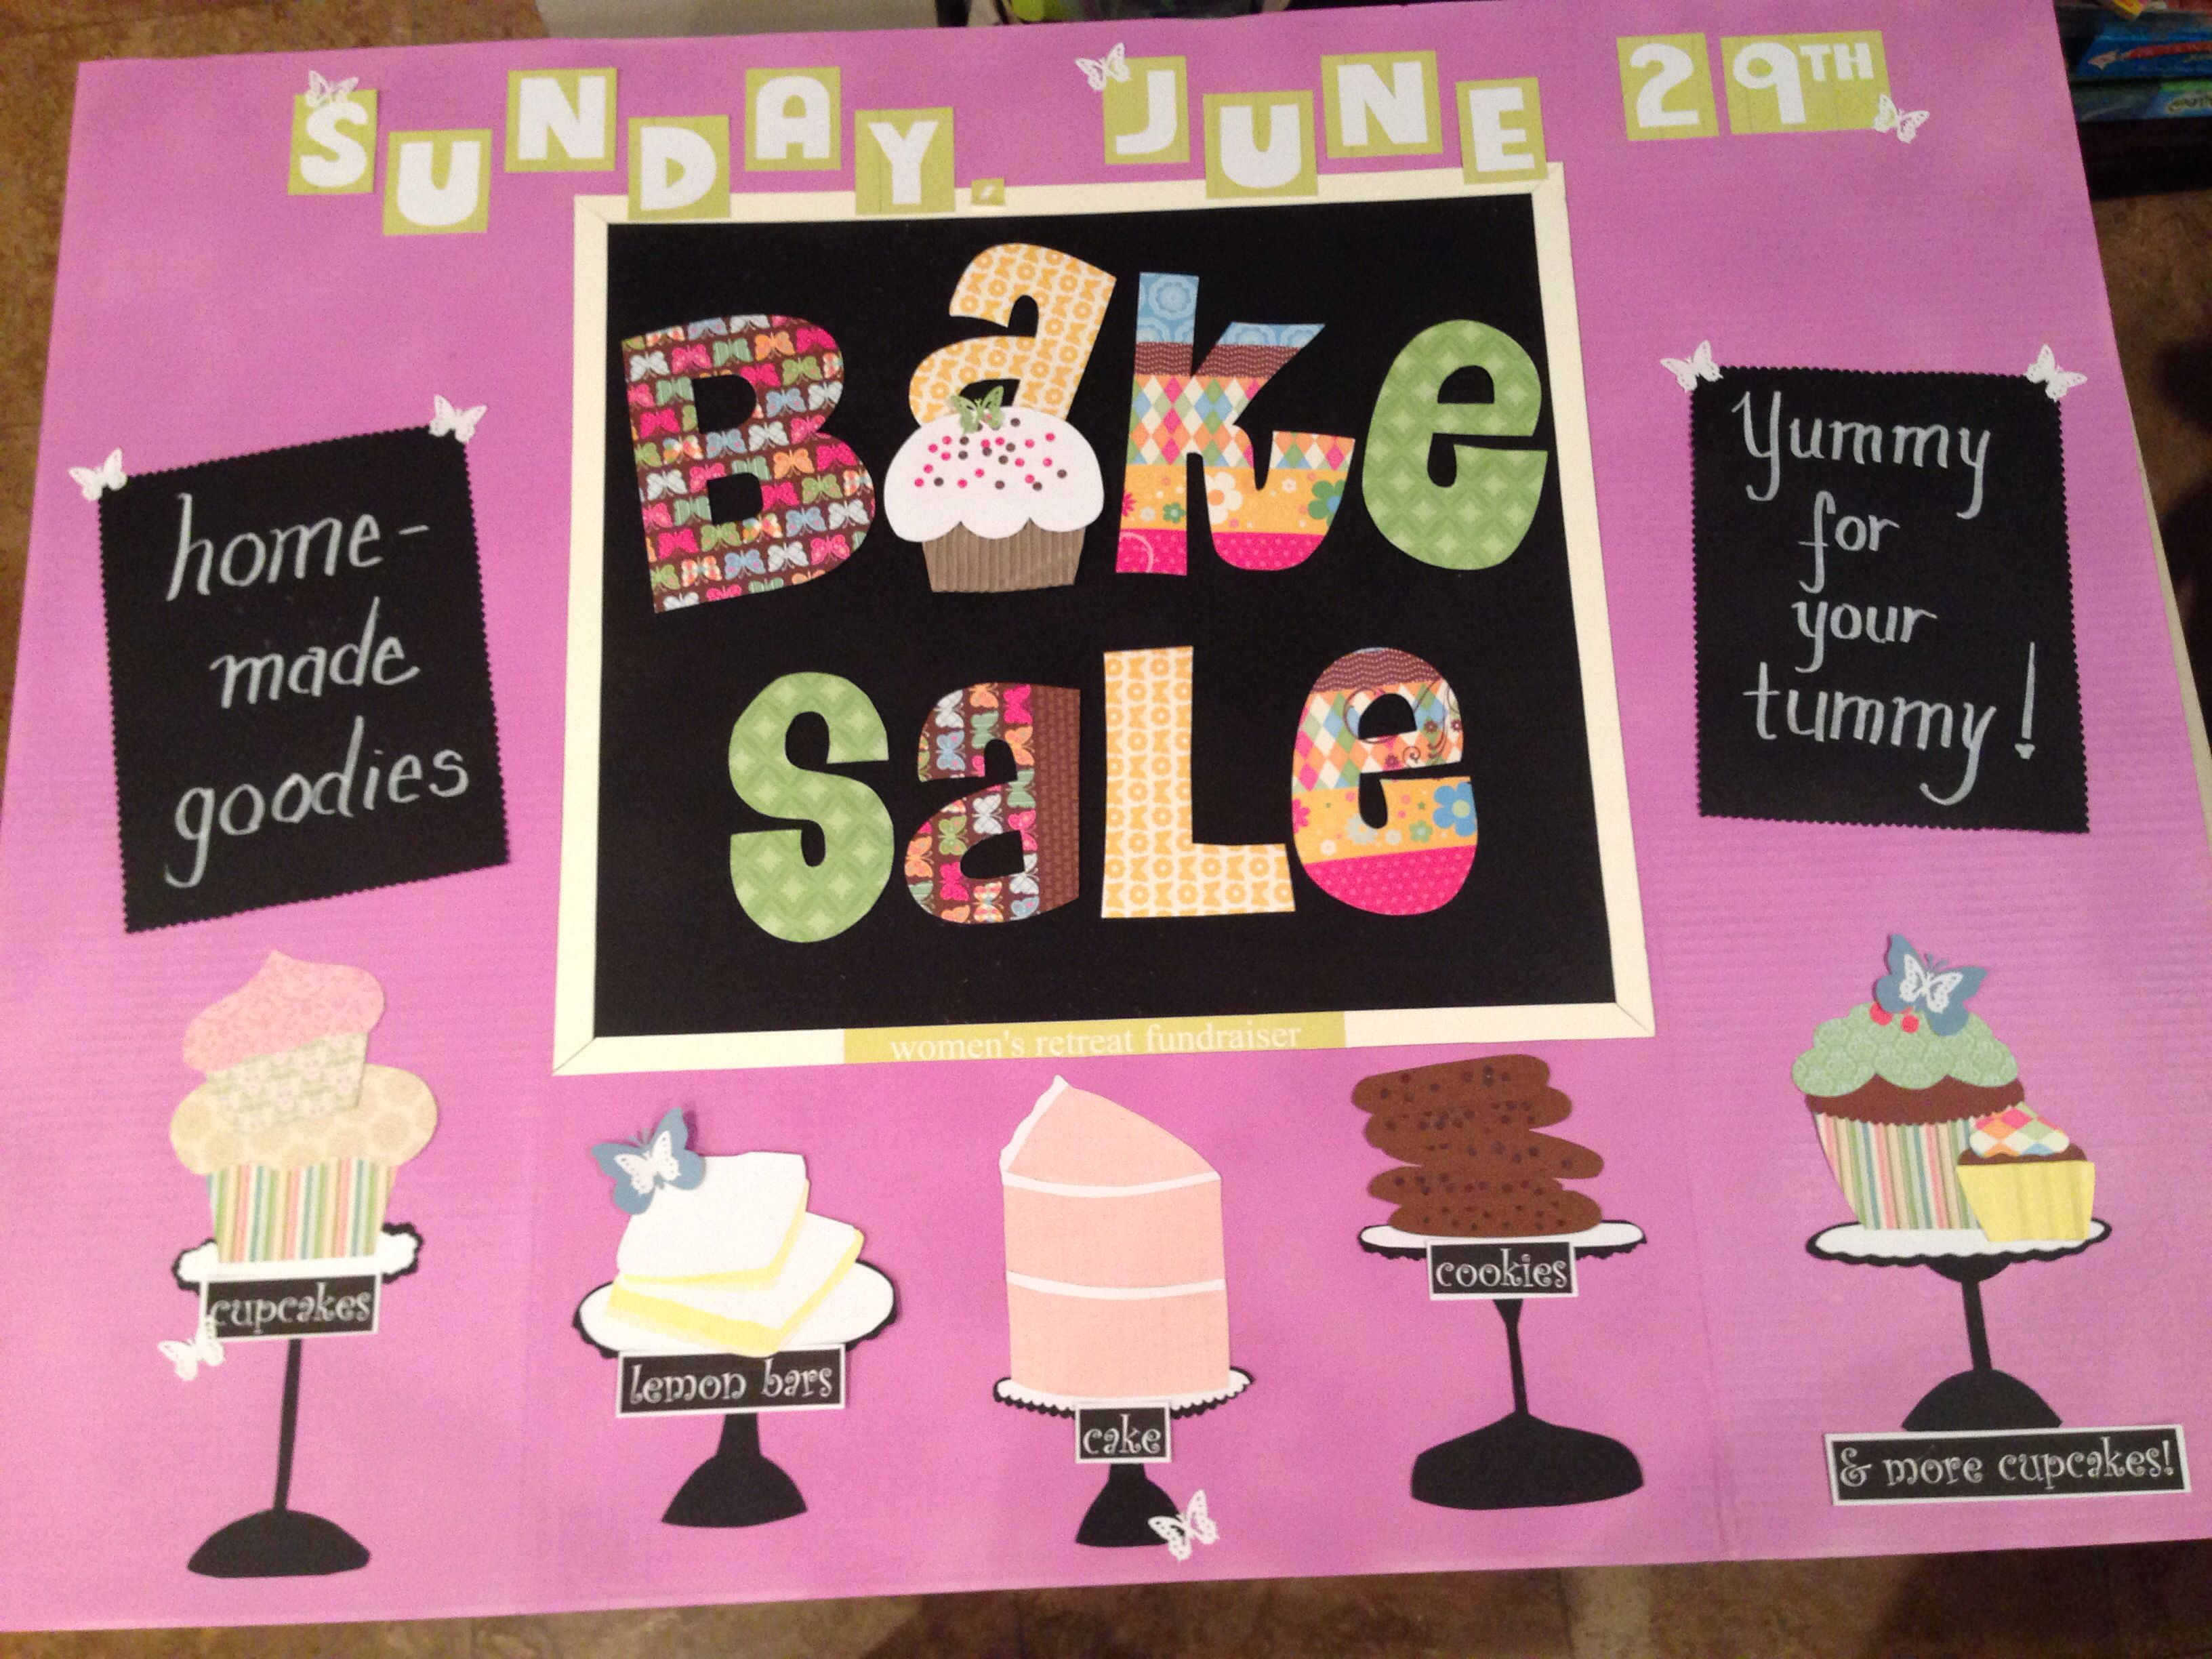 Bake Sale Sign  ClosetSweetbaker    Bake Sale Sign